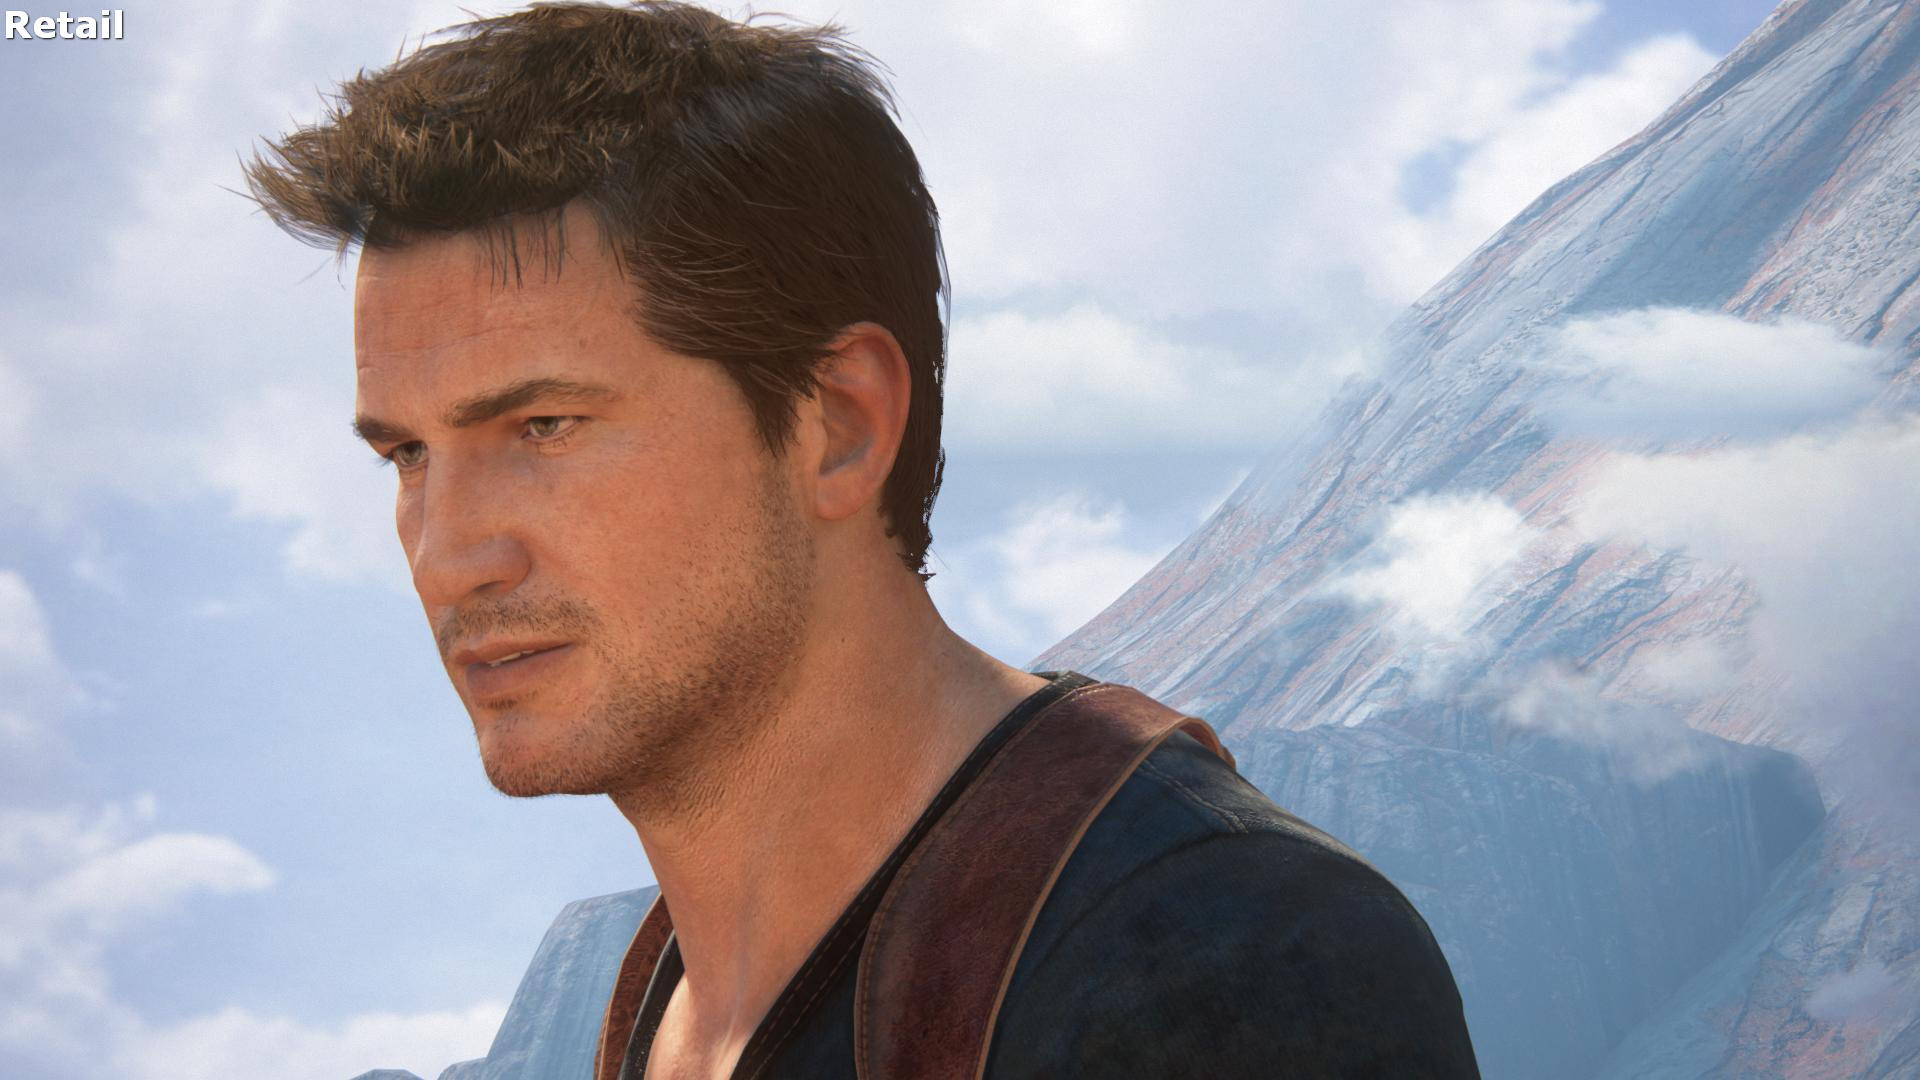 uncharted-4-screens-leaked-6